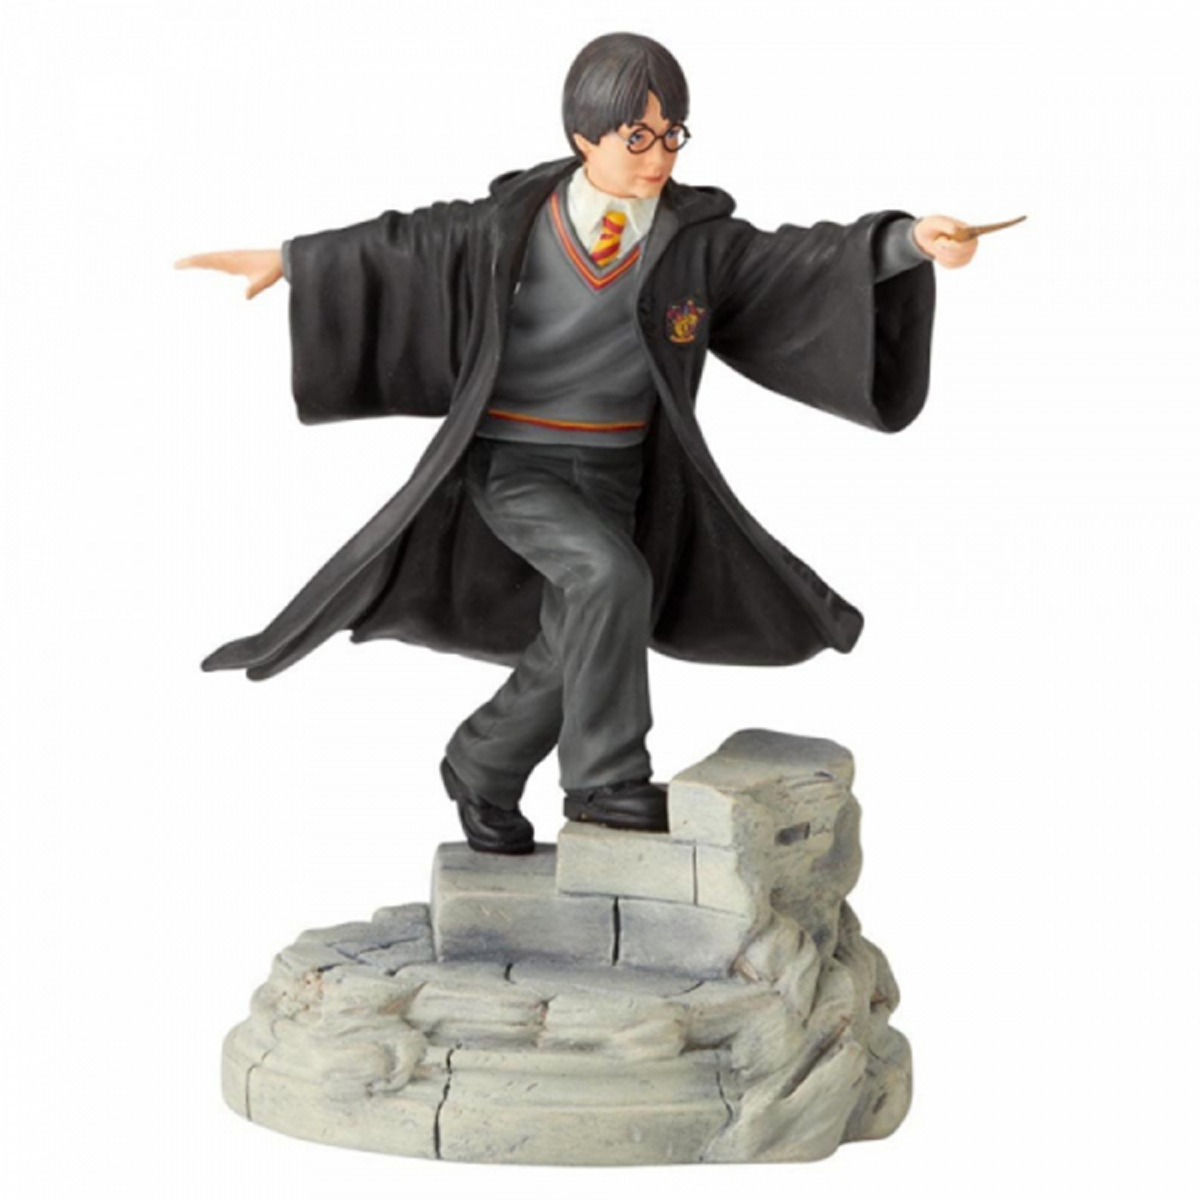 Figurine résine \'Harry Potter\' year one statue - 19x17x12 cm - [R2036]